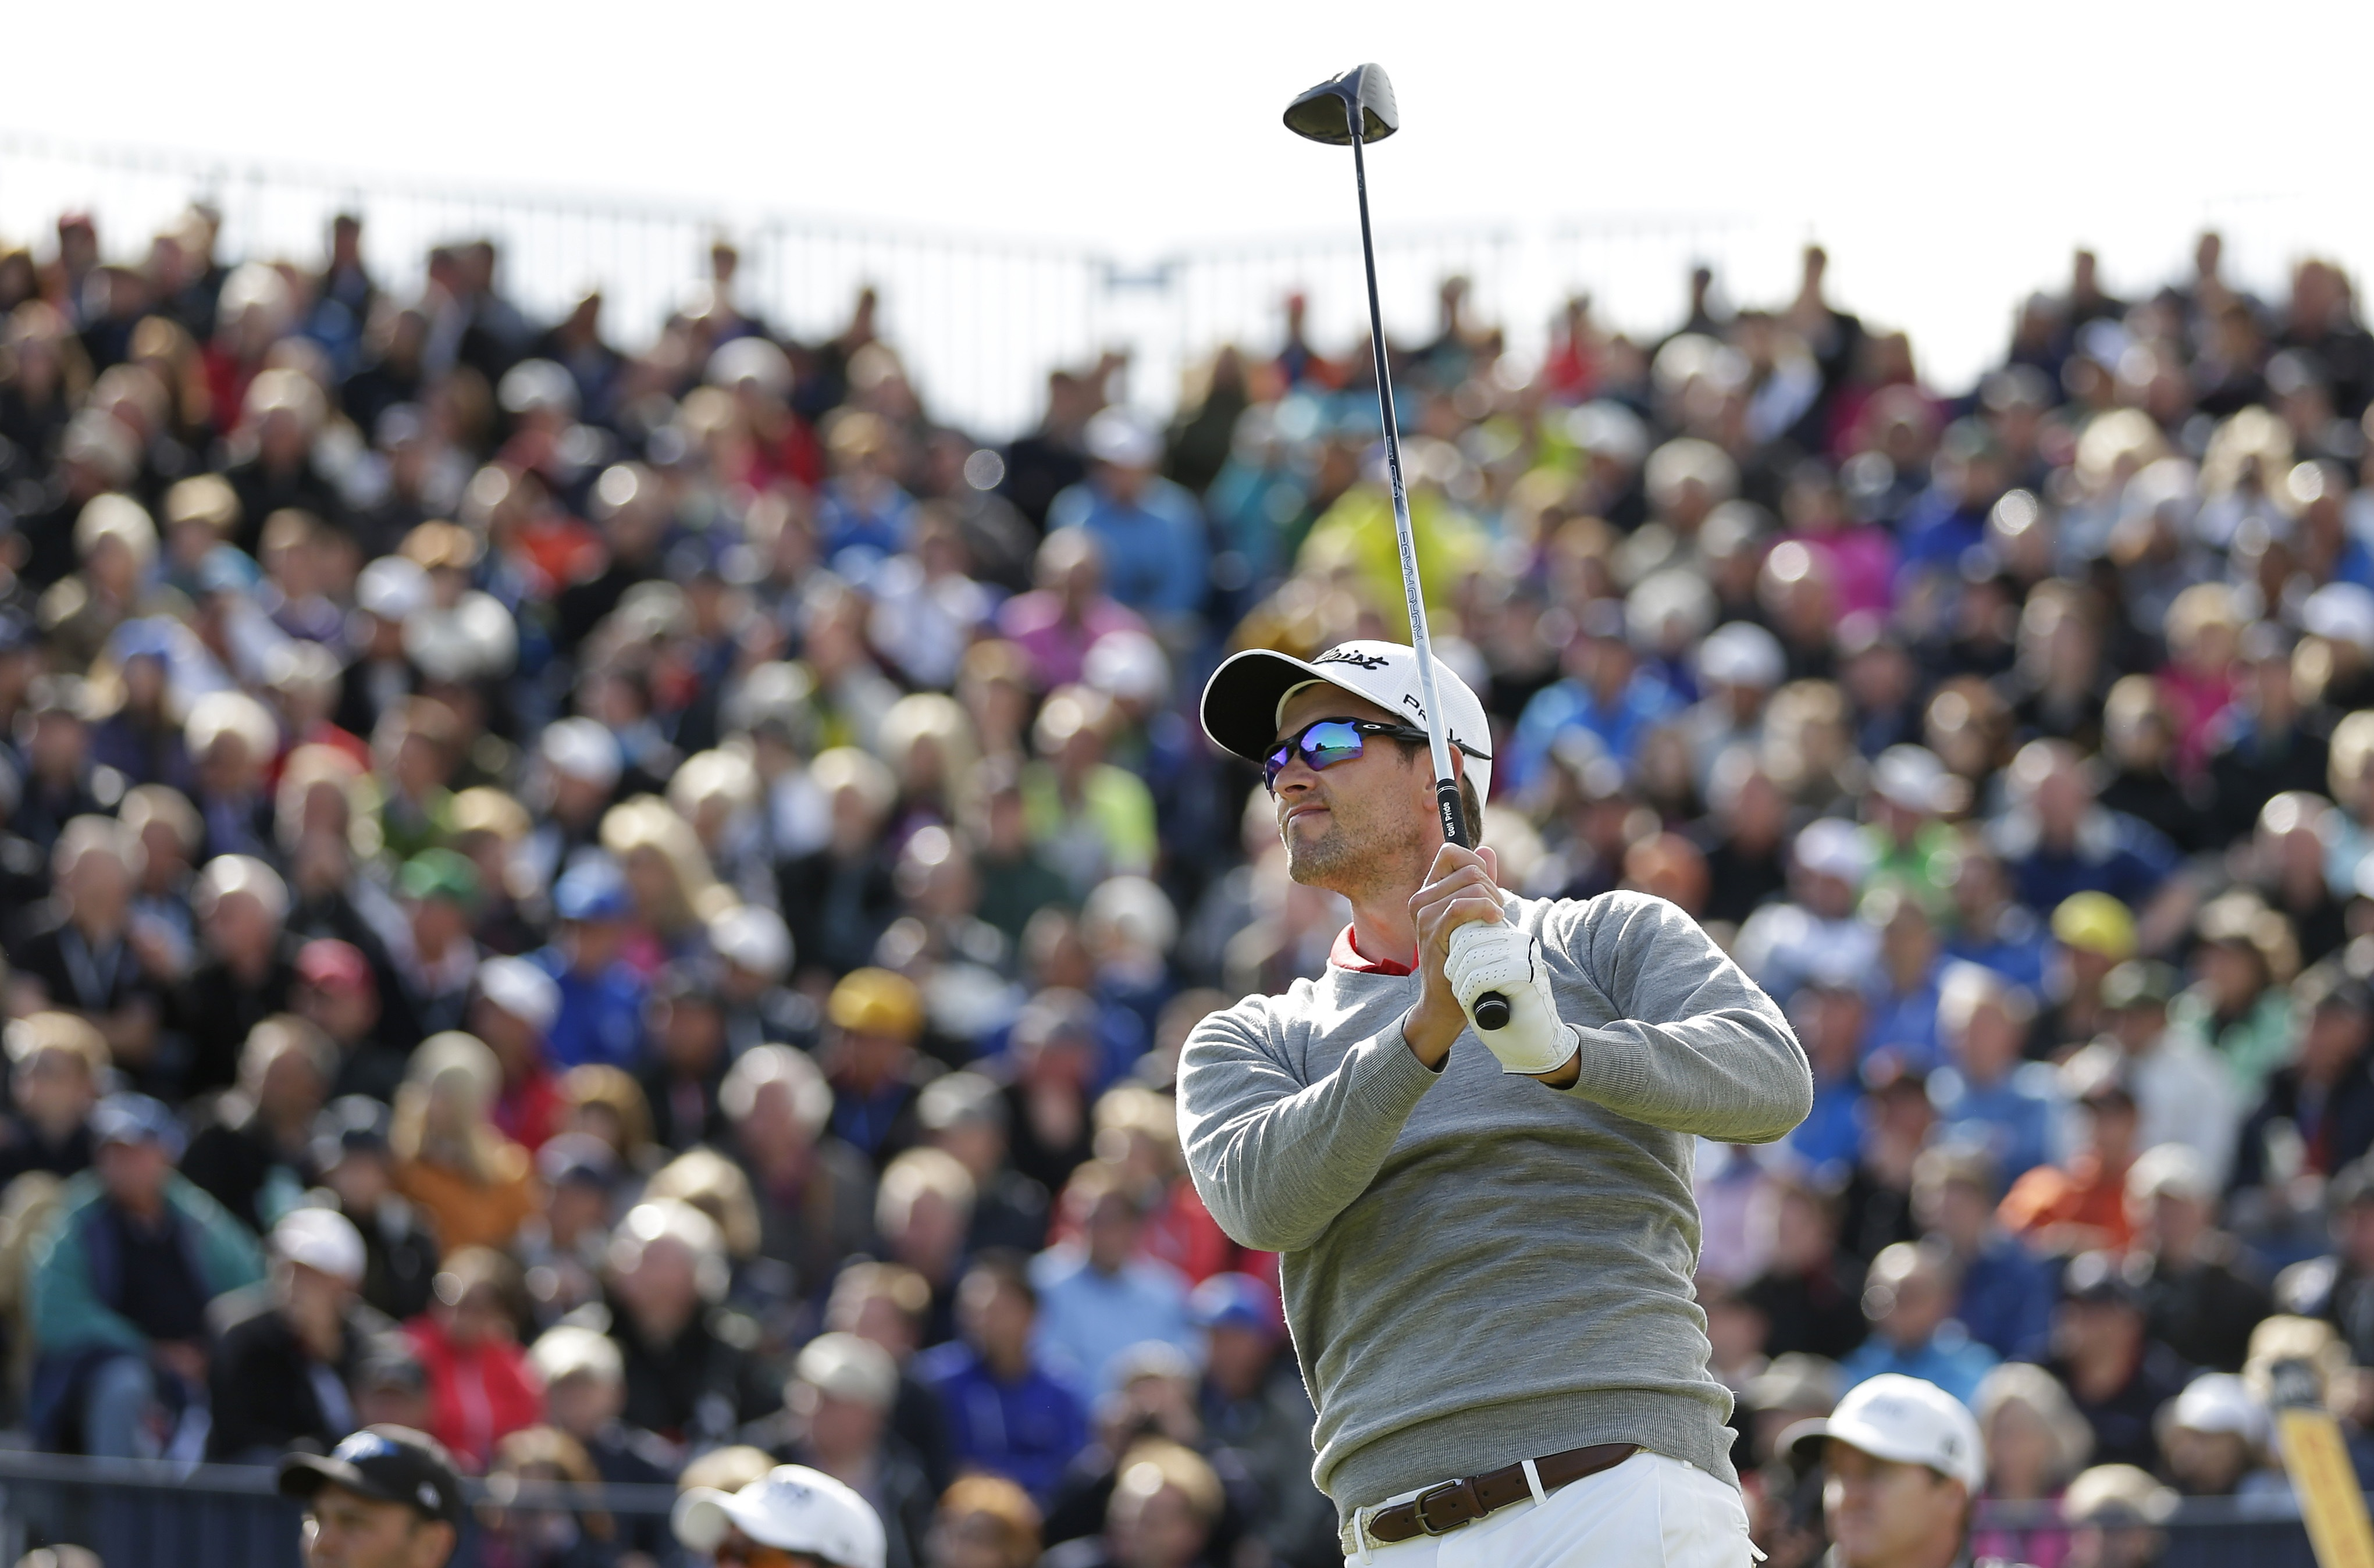 Adam Scott drives the ball from the 17th tee during the second round of the British Open